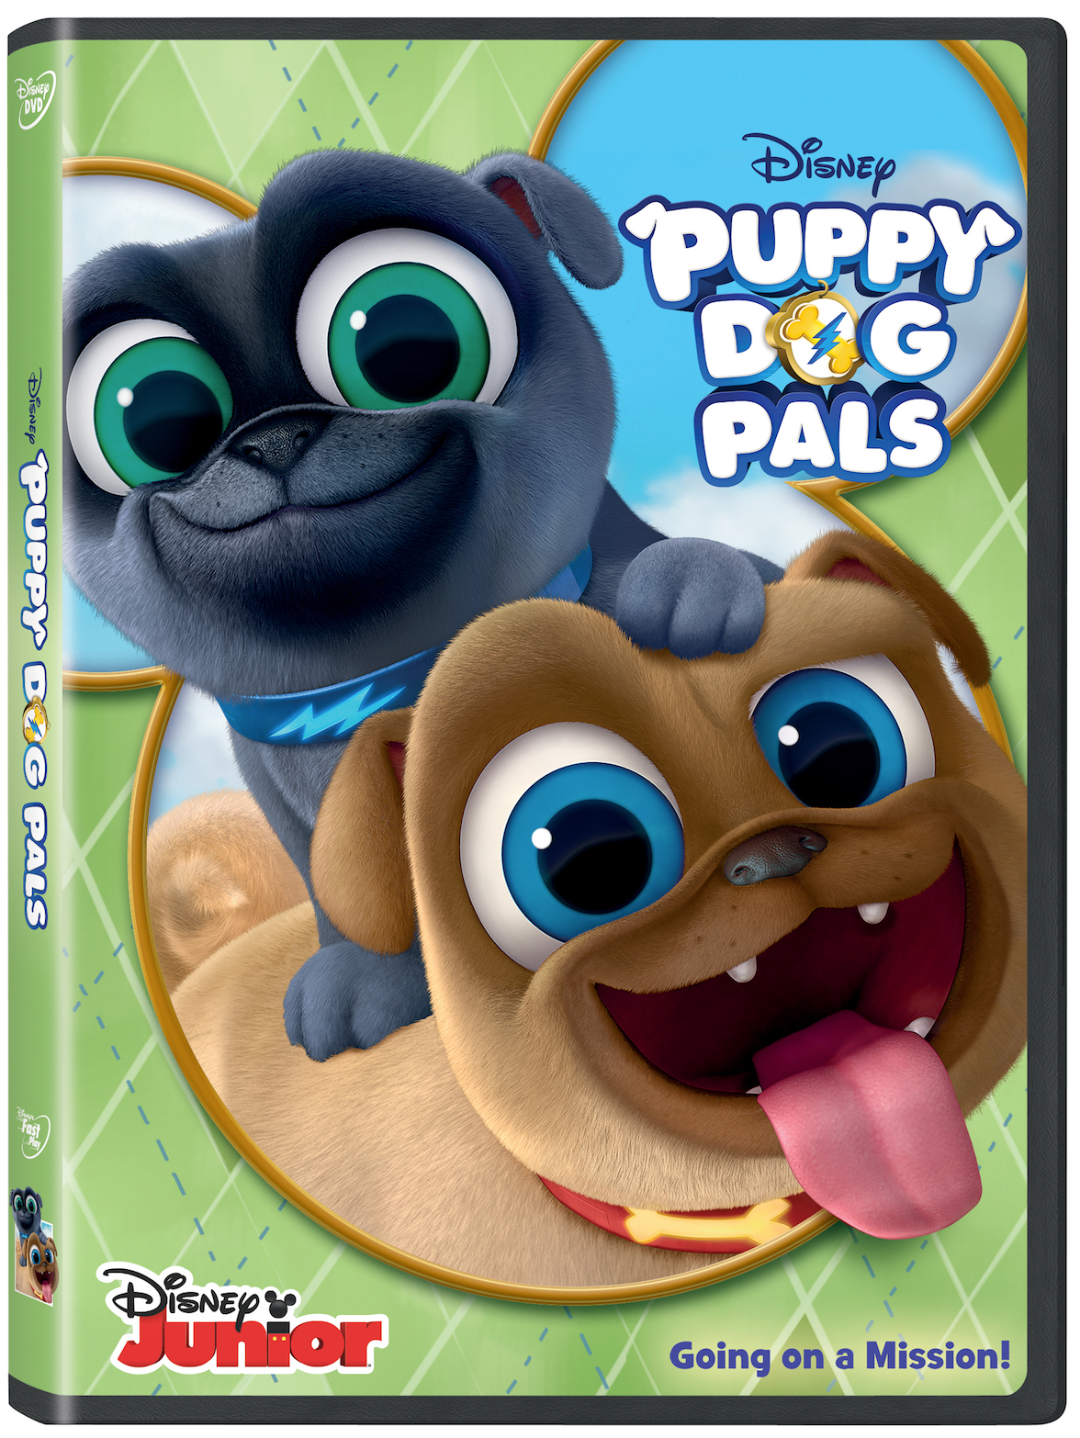 Roblox Circus Trip The Giggler Death Puppy Dog Pals On Dvd Mommy Katie